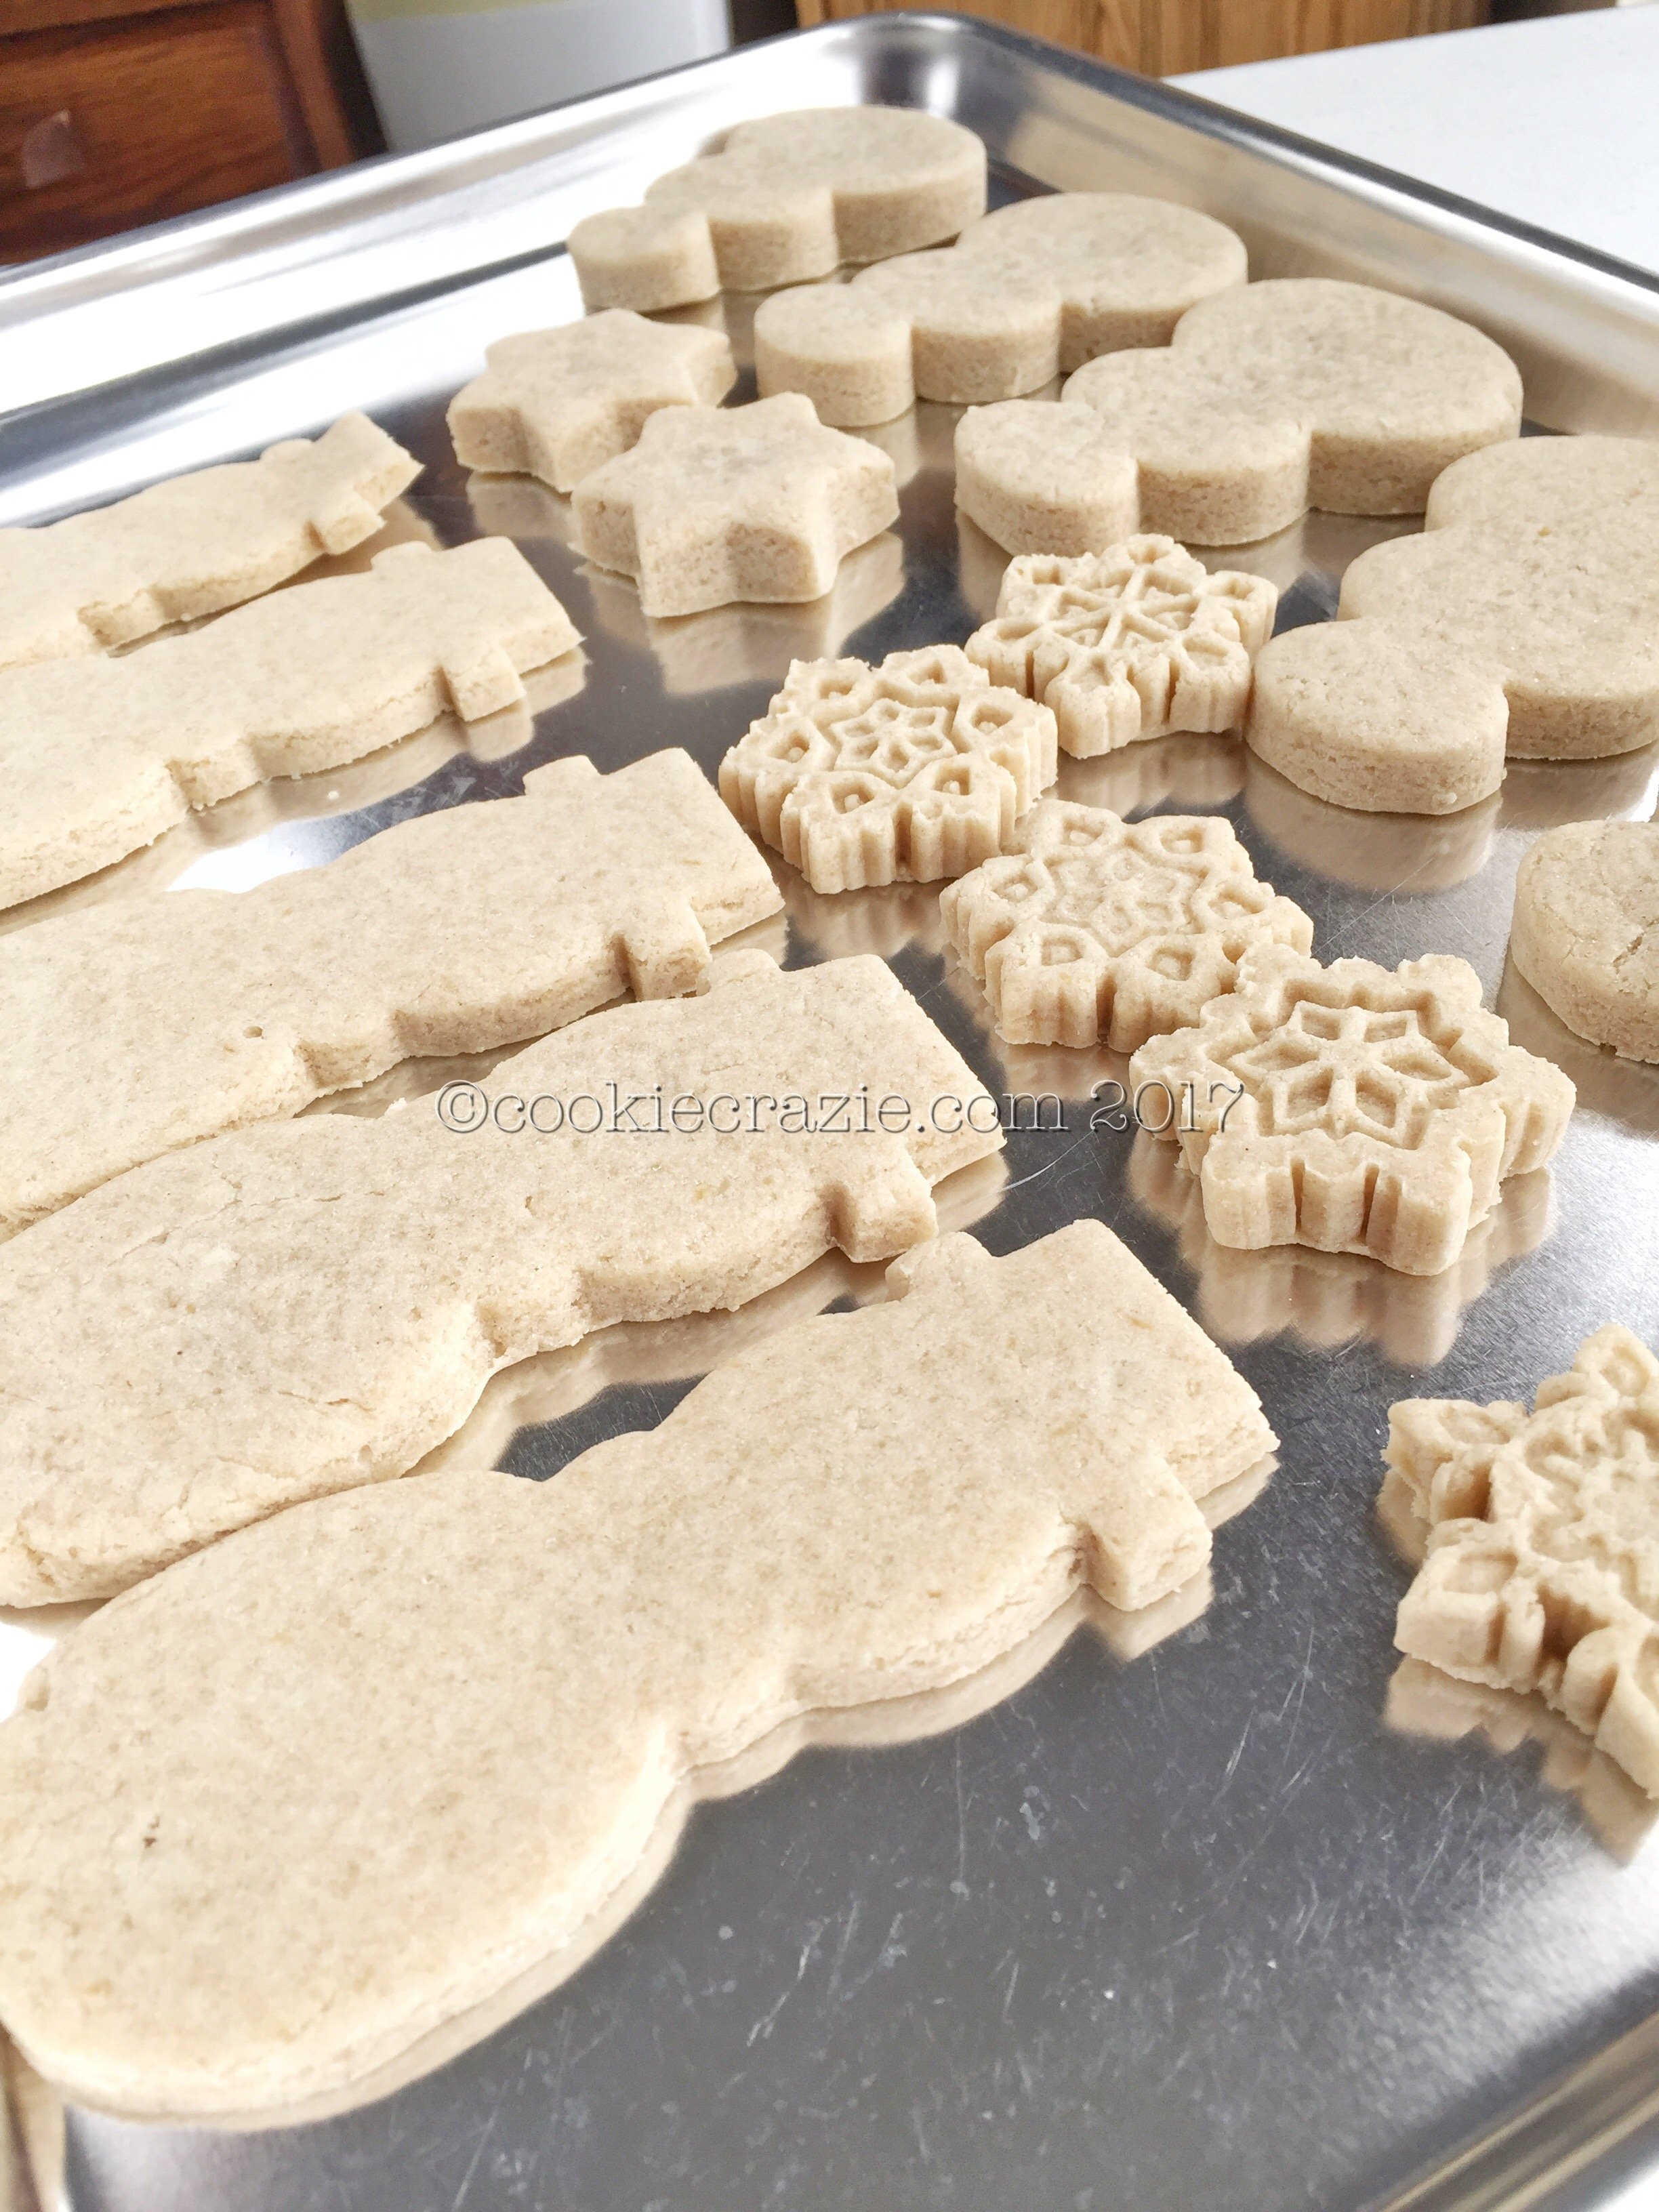 """This particular batch was made with coconut oil. The tops of these cookies are kind of splotchy and not as pretty as those made with vegan """"butter"""". Plus, coconut oil will often add a coconut flavor to the recipe. That's not a problem for me since I love coconut, but it might be for someone else."""